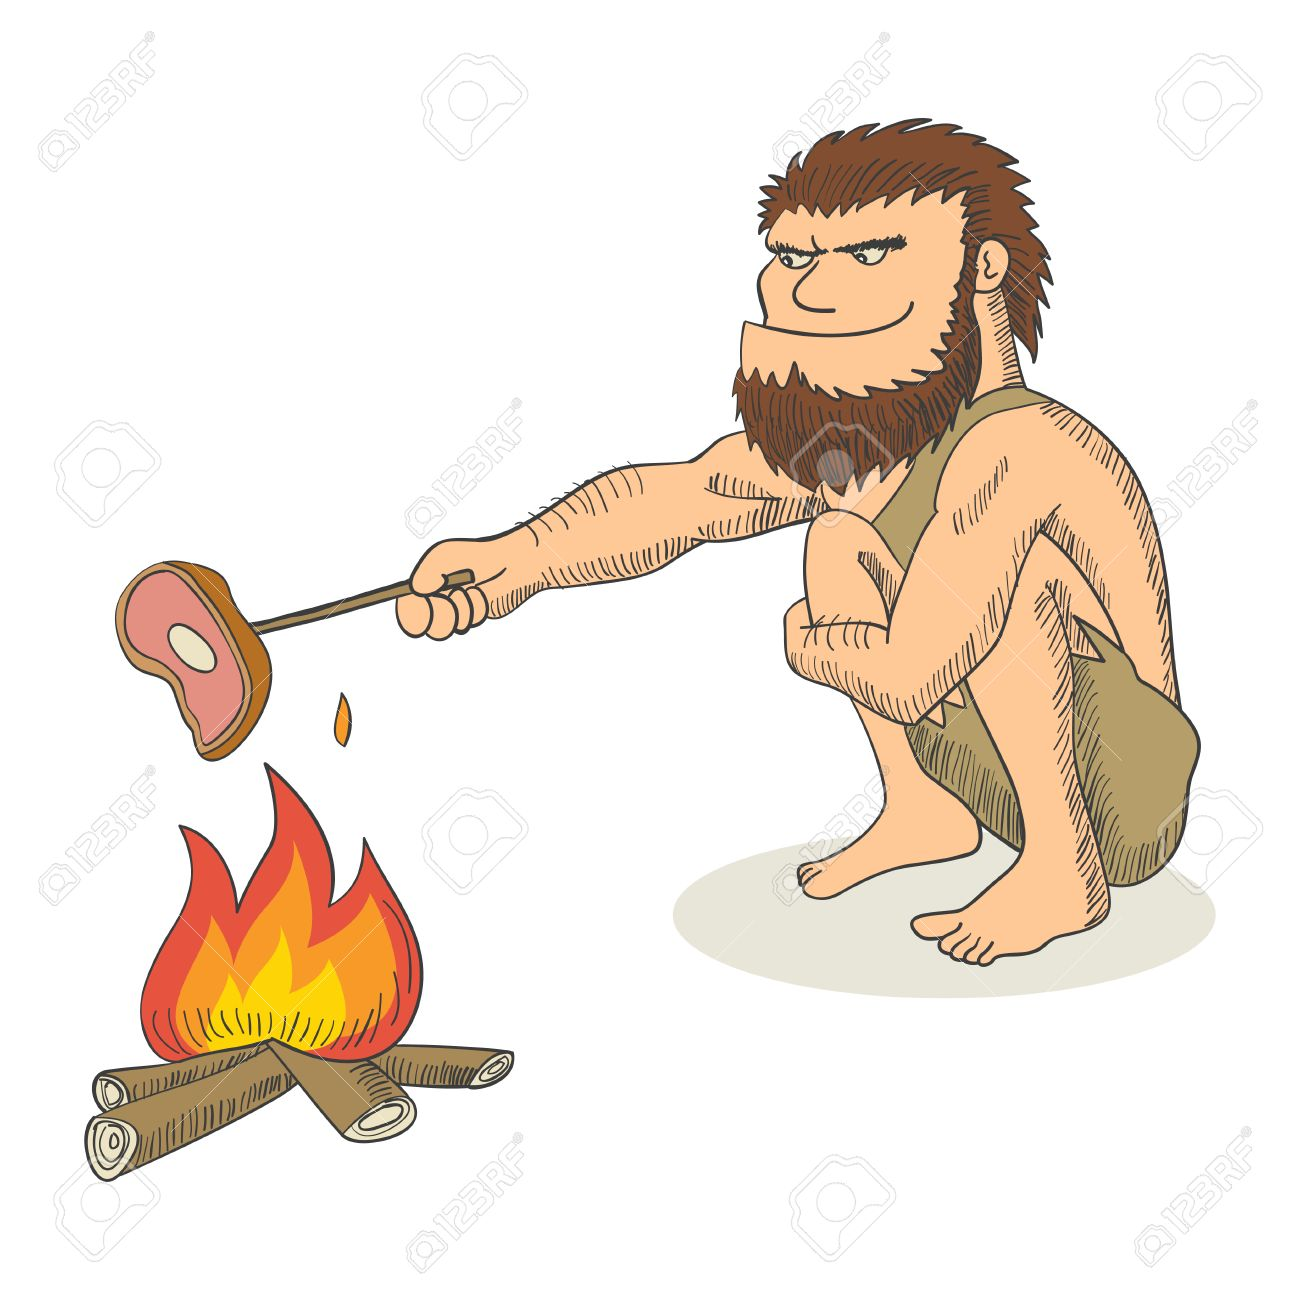 Cartoon illustration of a caveman cooking meat on fire - 52417241